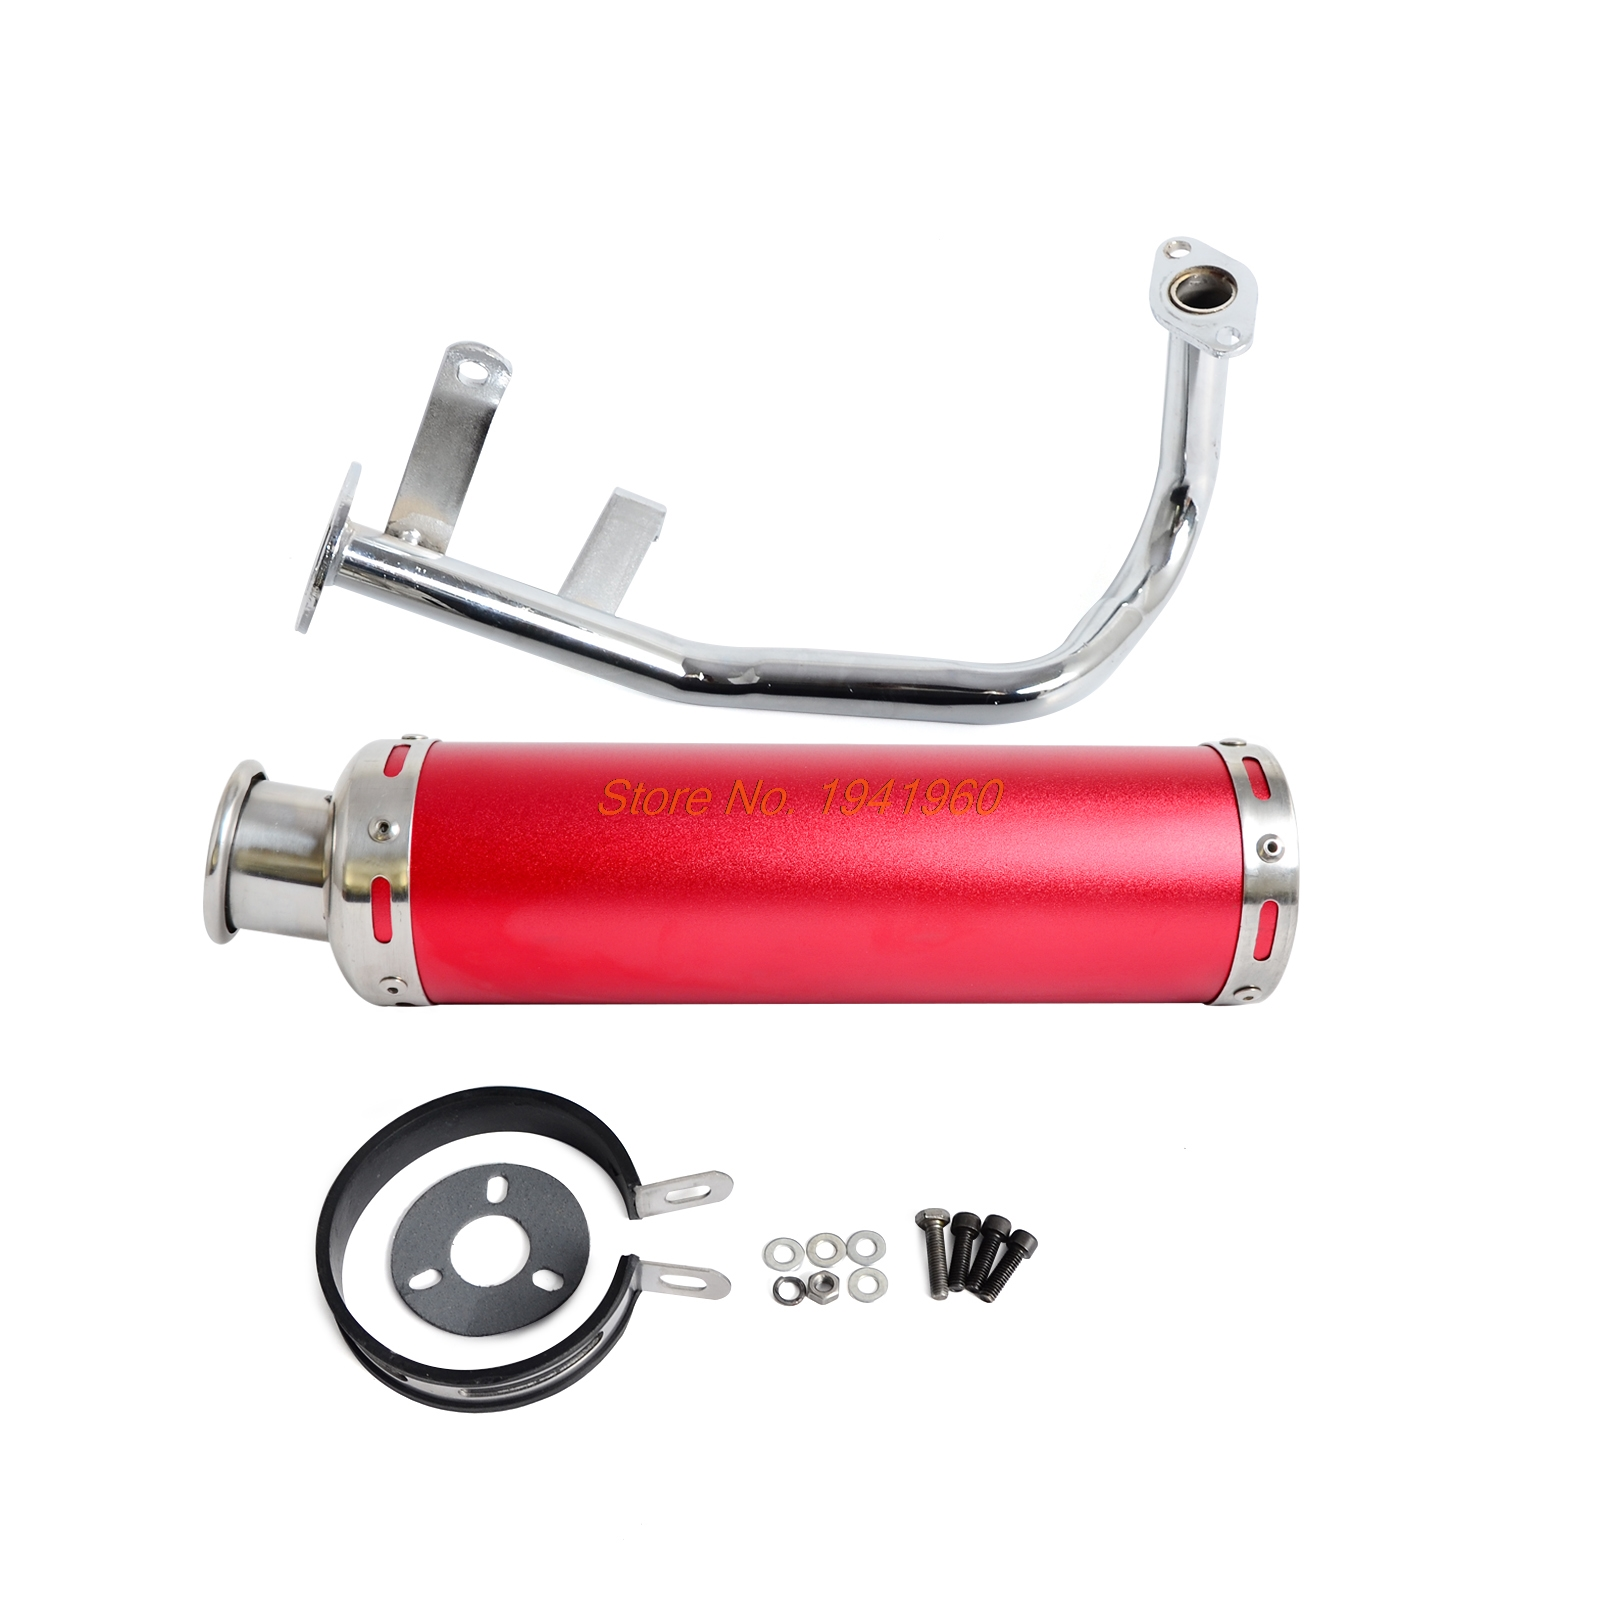 NICECNC Motorcycle Full System Exhaust Muffle Pipe For GY6 139QMB Chinese Scooter 4 Stroke 50cc Engines Exhaust System Pipe makita b 48228 бур sds 25х200х250мм v plus